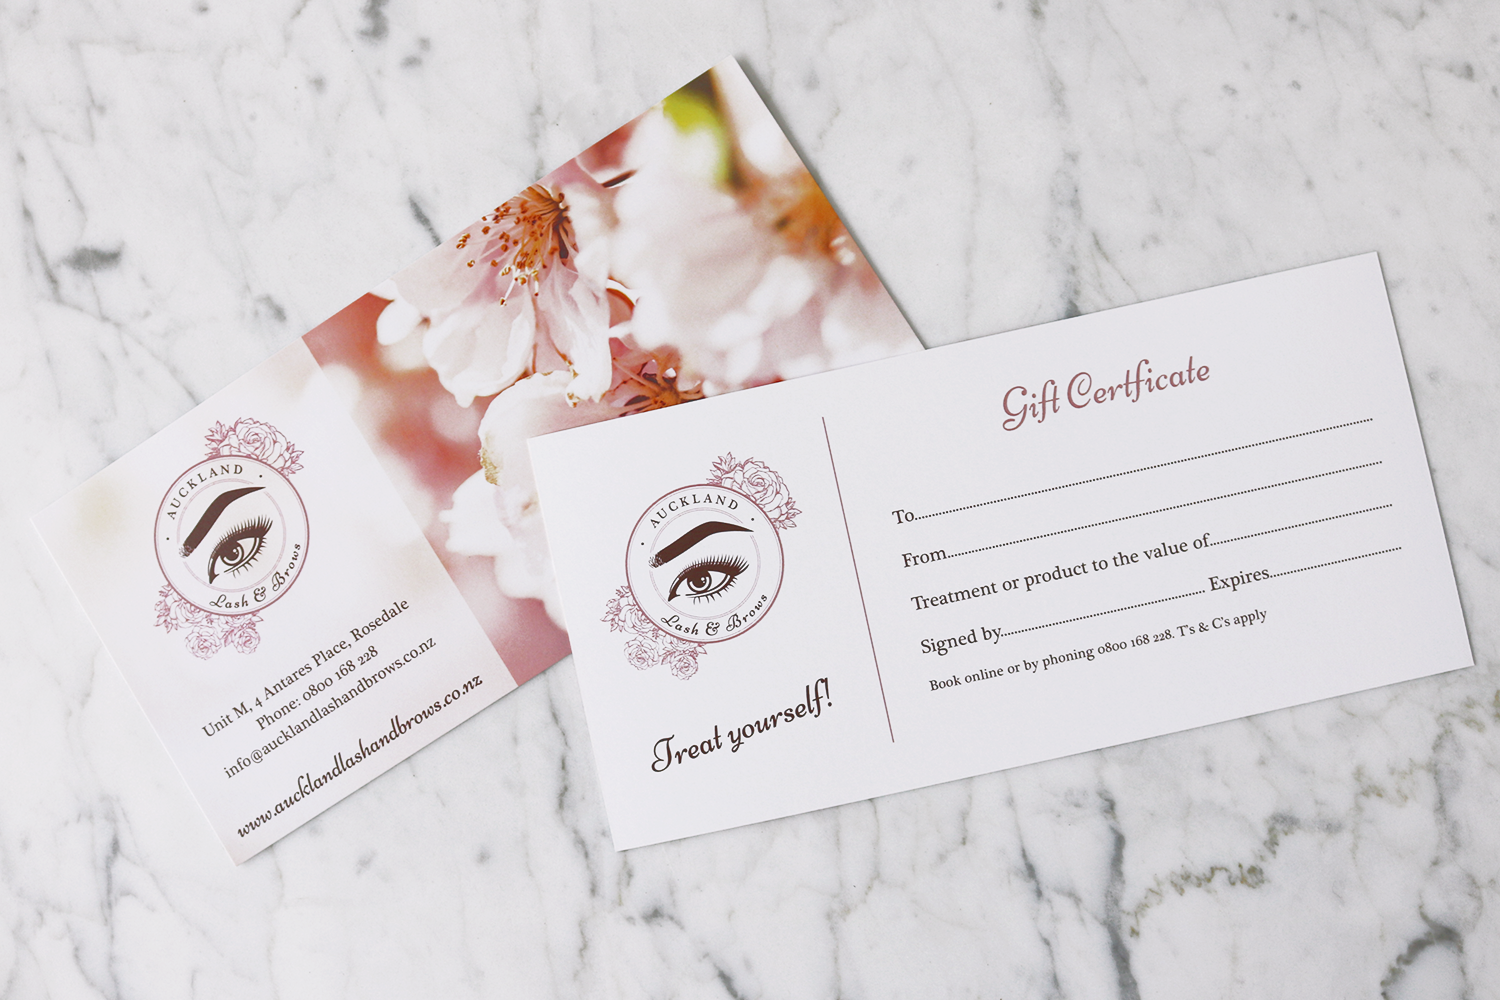 auckland-lash-and-brows-gift-certificate-2.png